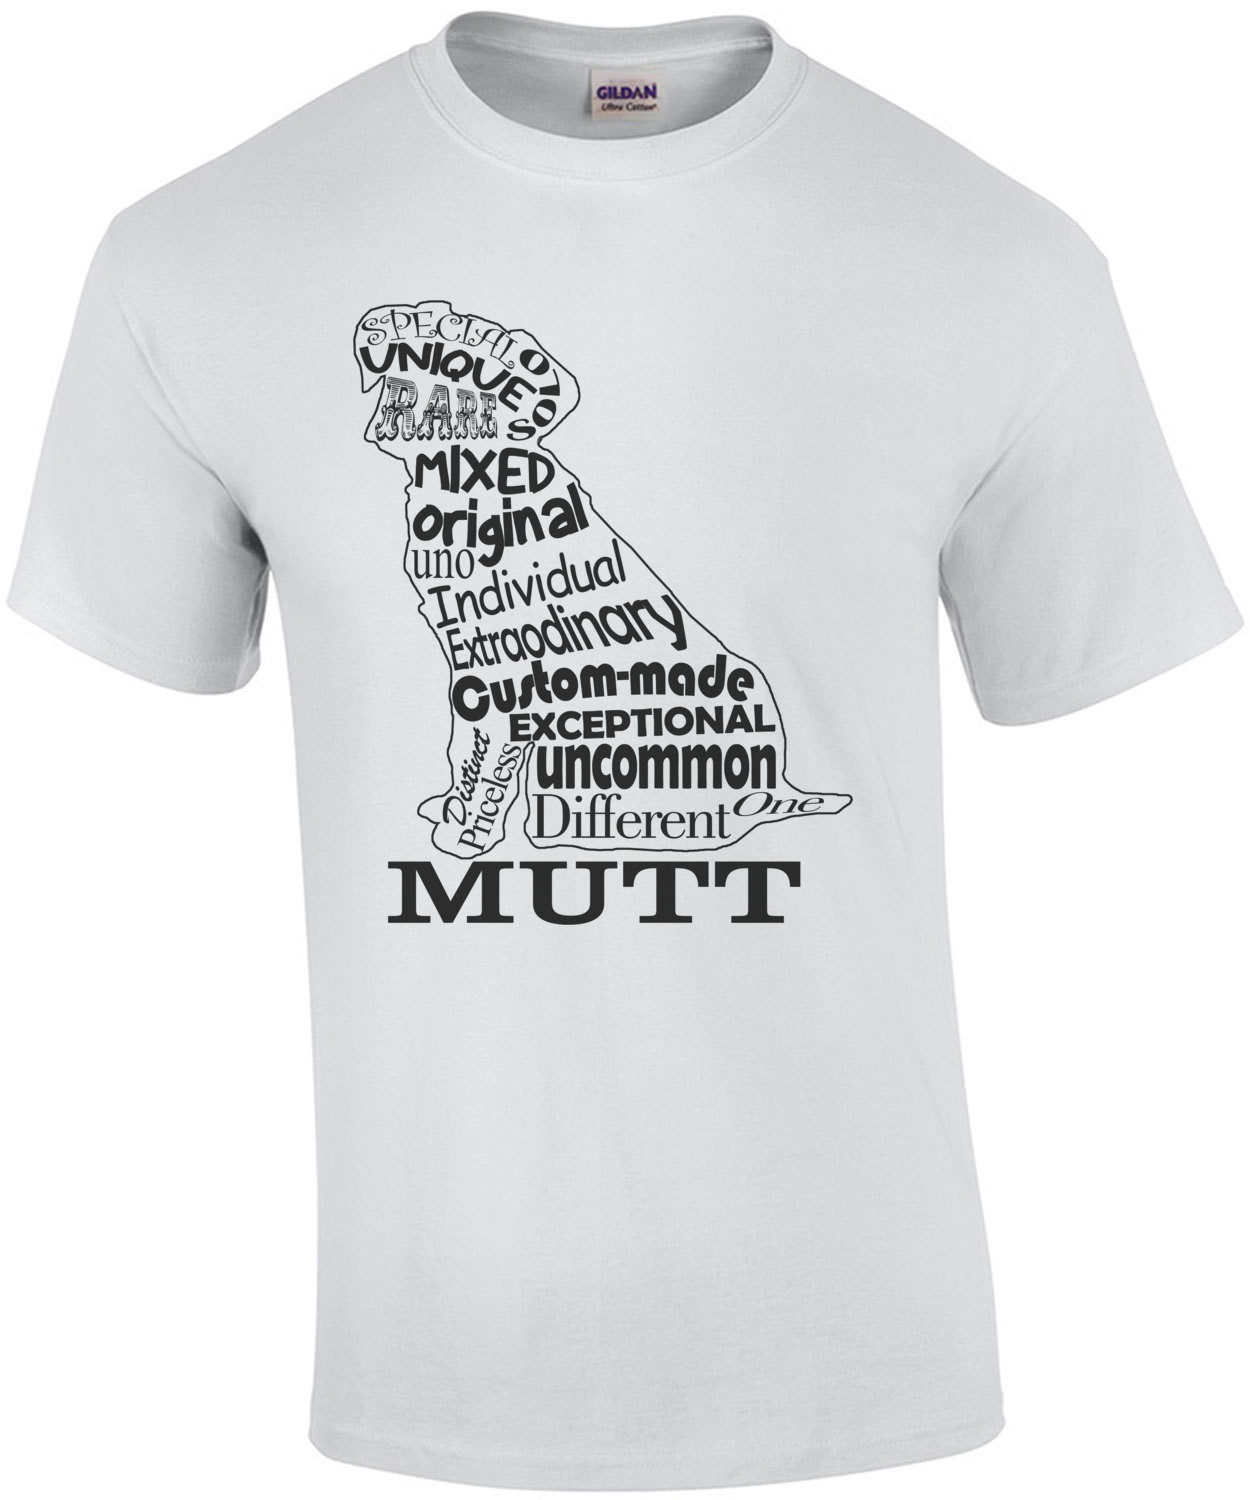 Mutt Exceptional Mixed Original Individual T-Shirt